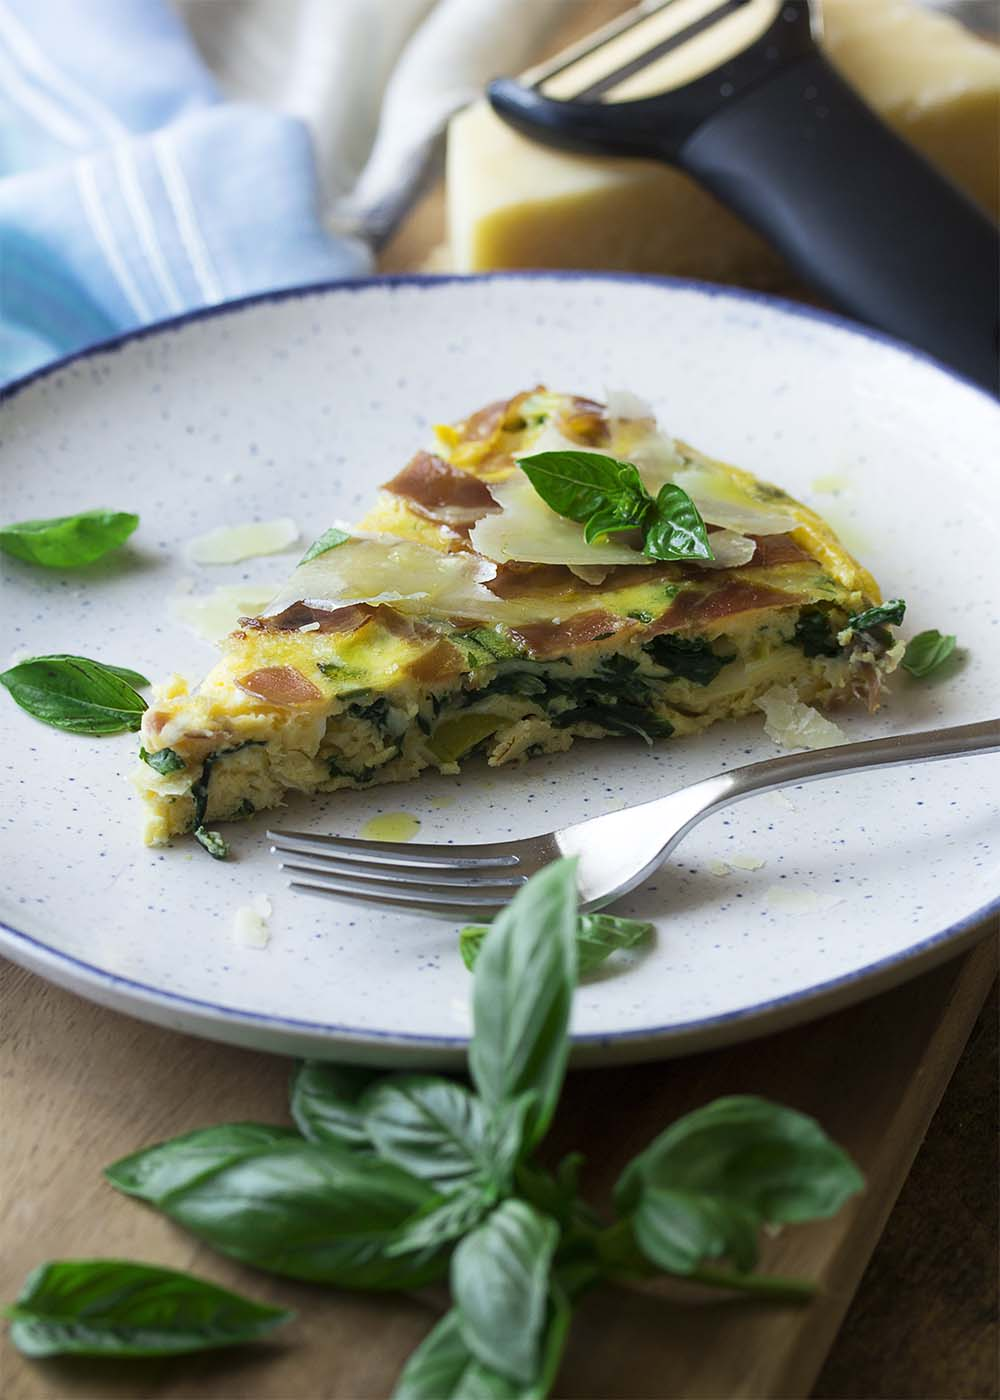 A slice of leek frittata on a plate, showing the leeks and greens in the eggs, with a fork ready to take a piece.